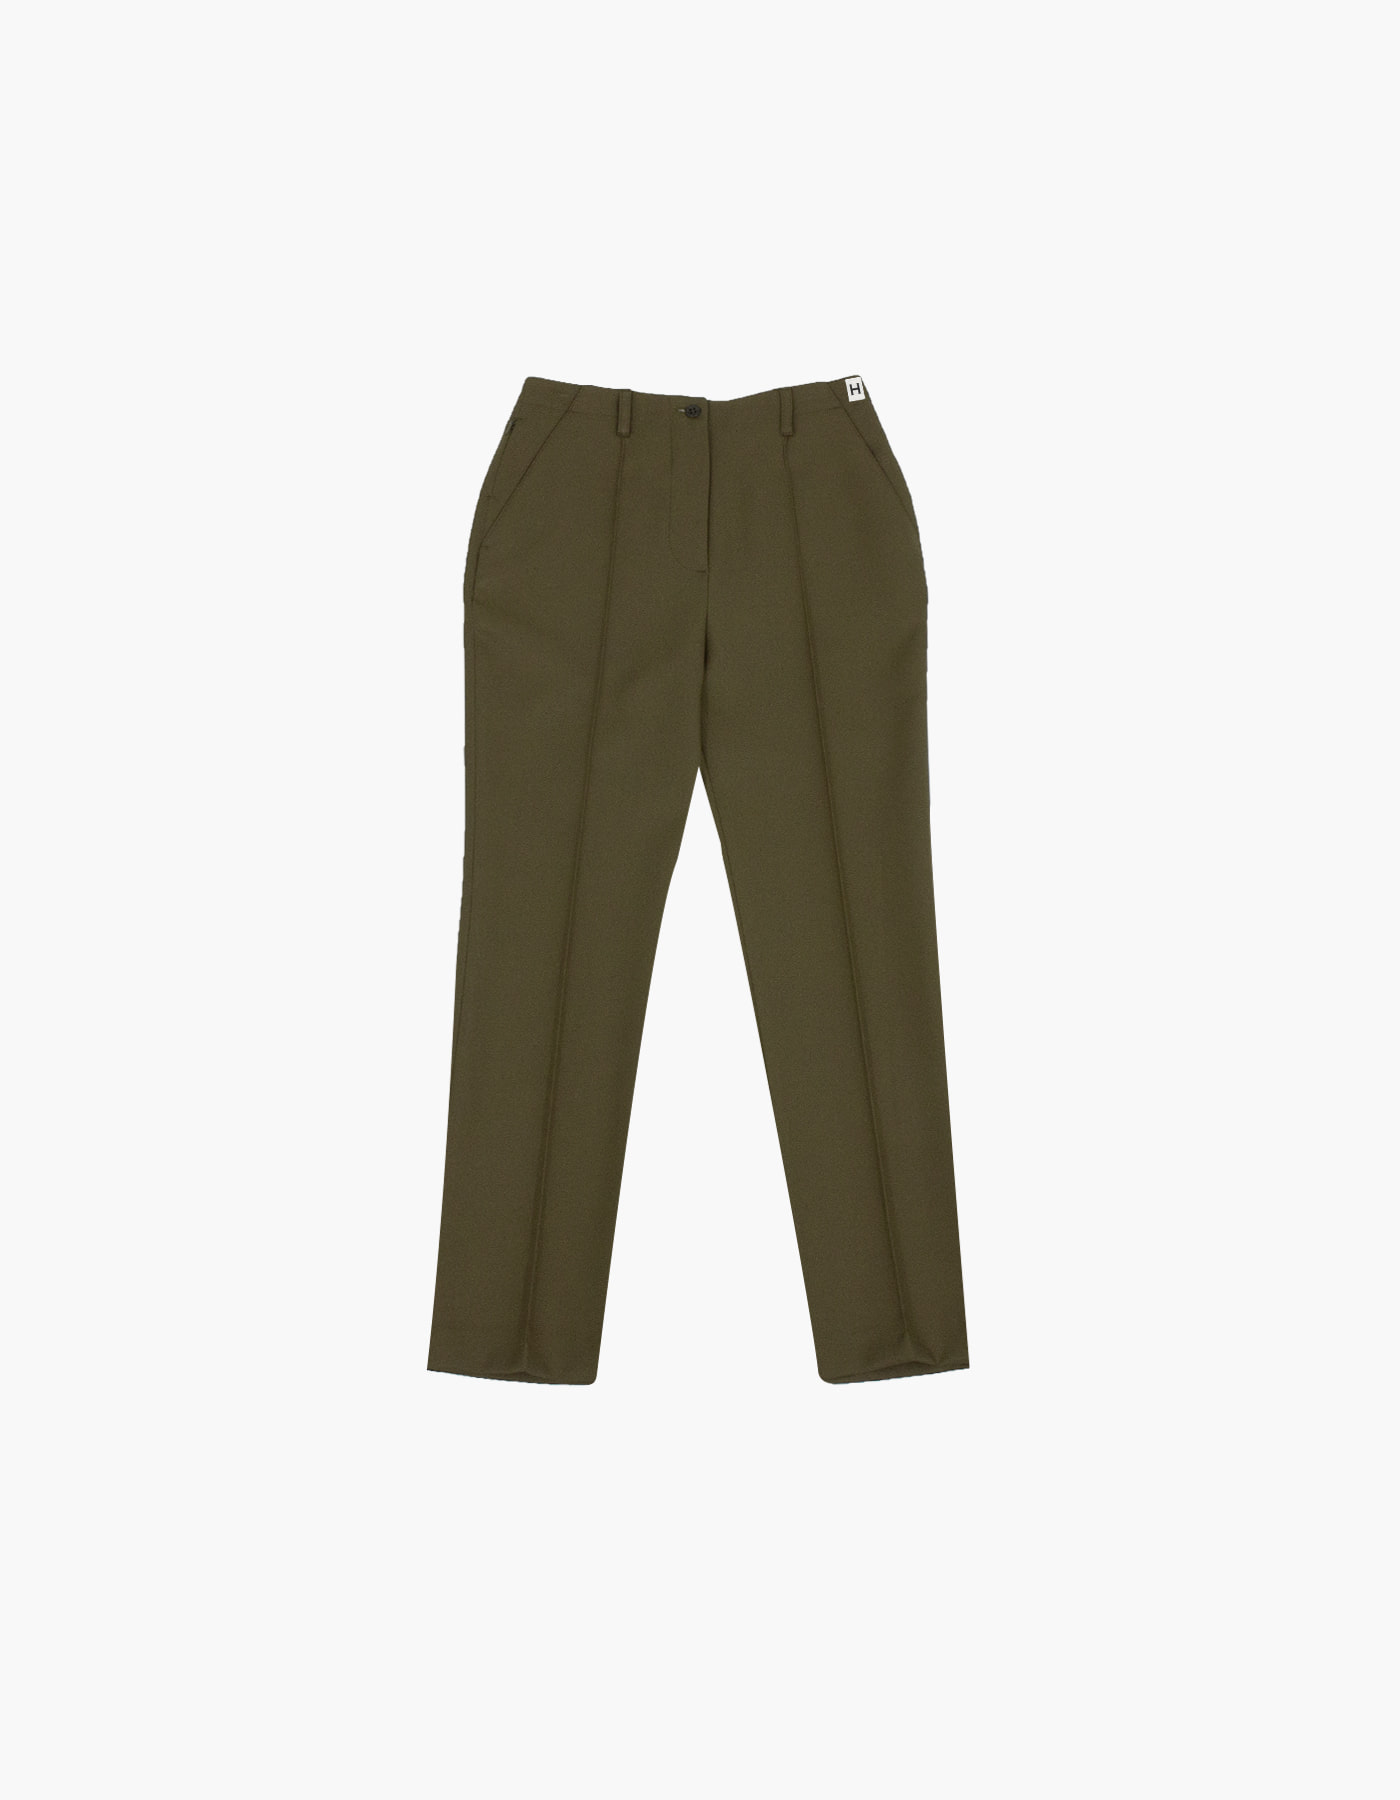 851 PIN TUCK CHINO PANTS (W) / KHAKI